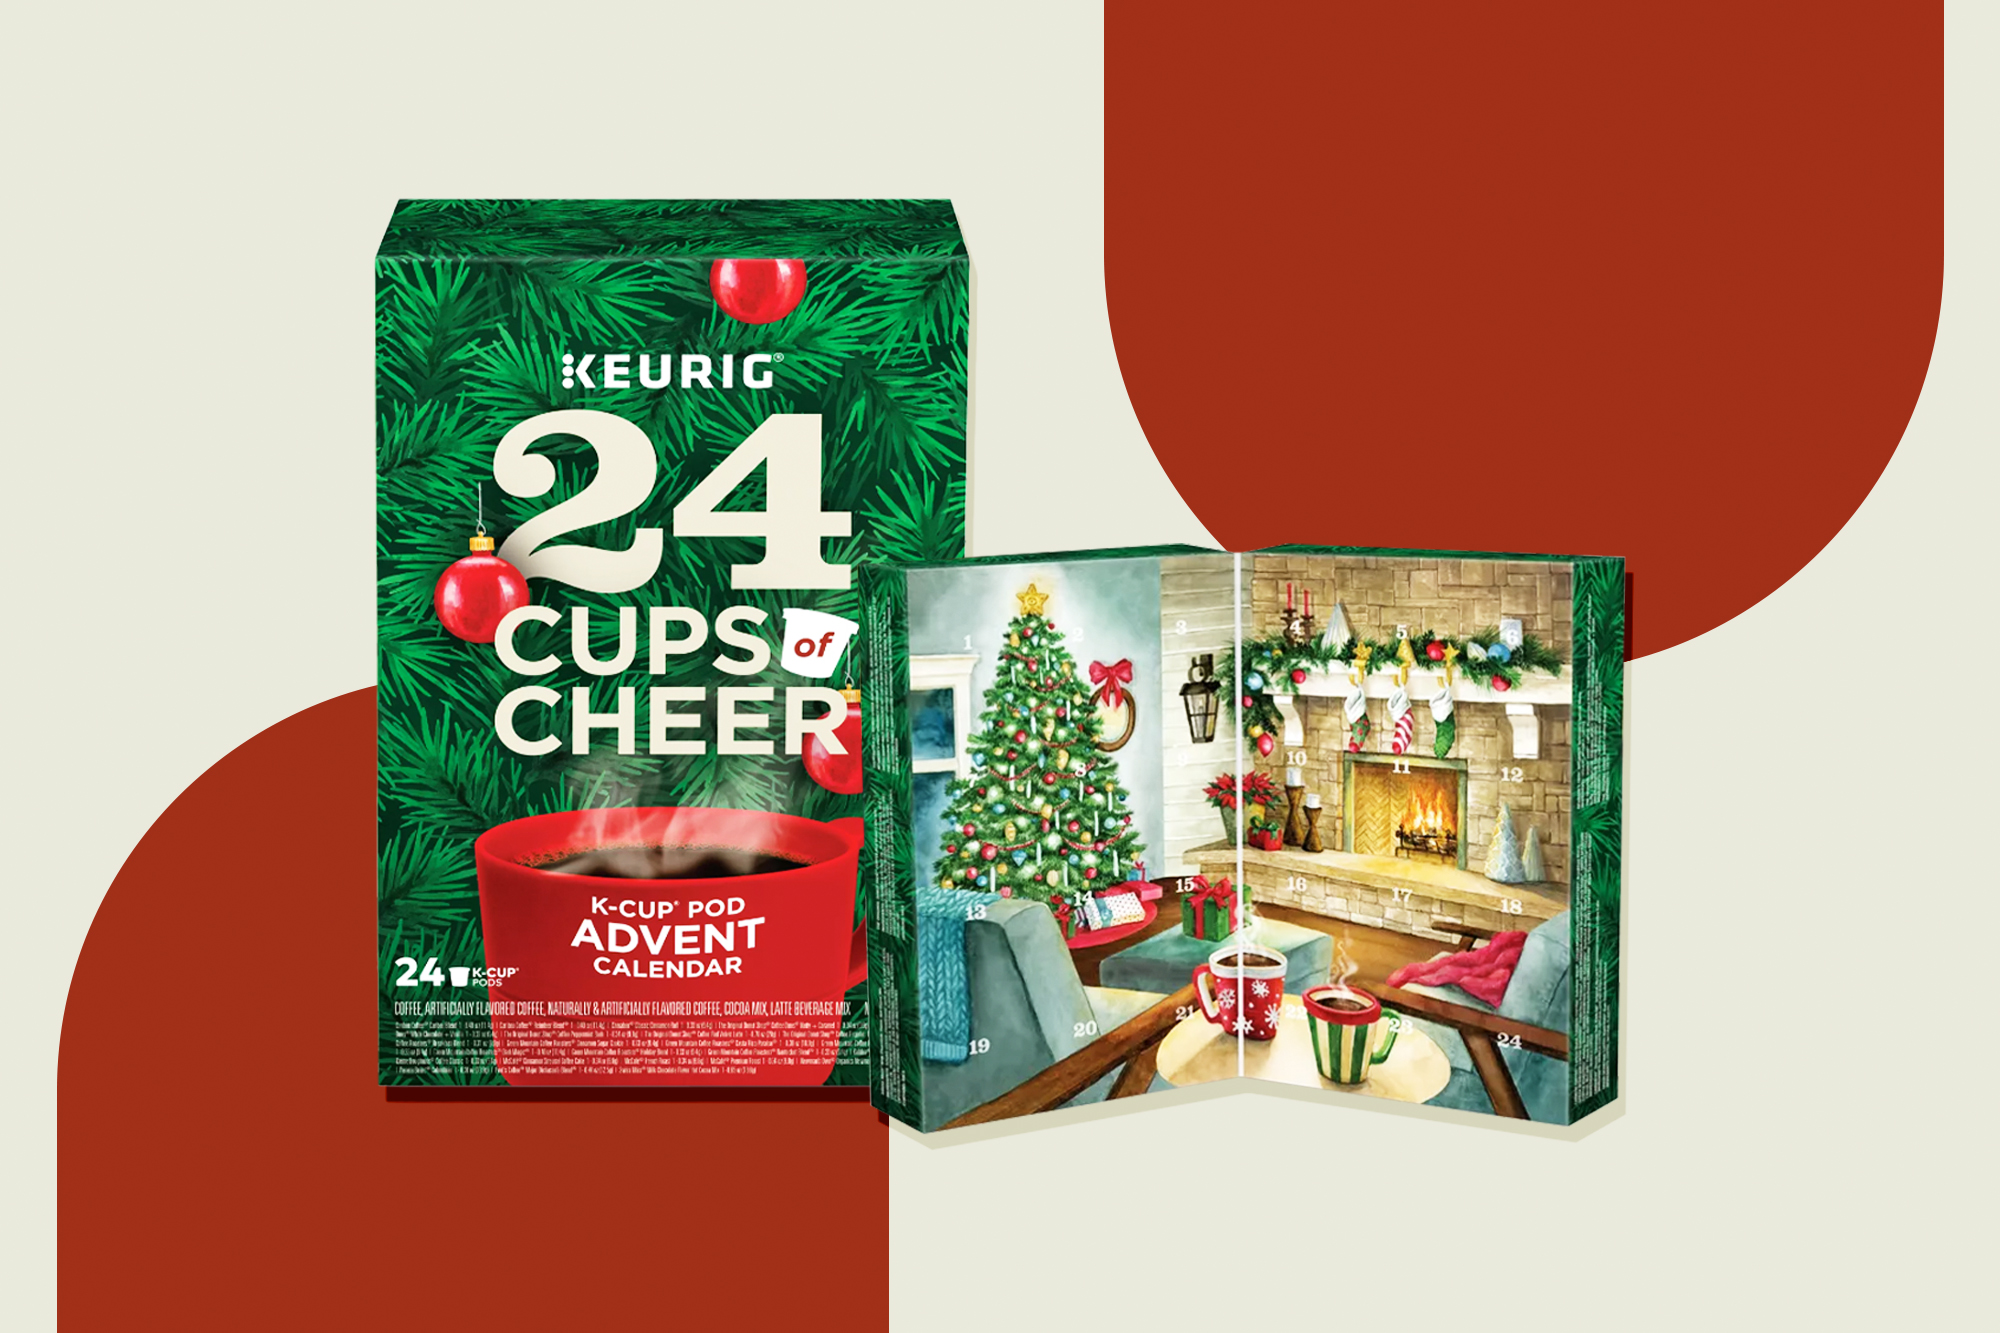 Keurig® Cups of Cheer Advent Calendar K-Cup® Pods 24-Count on a designed background